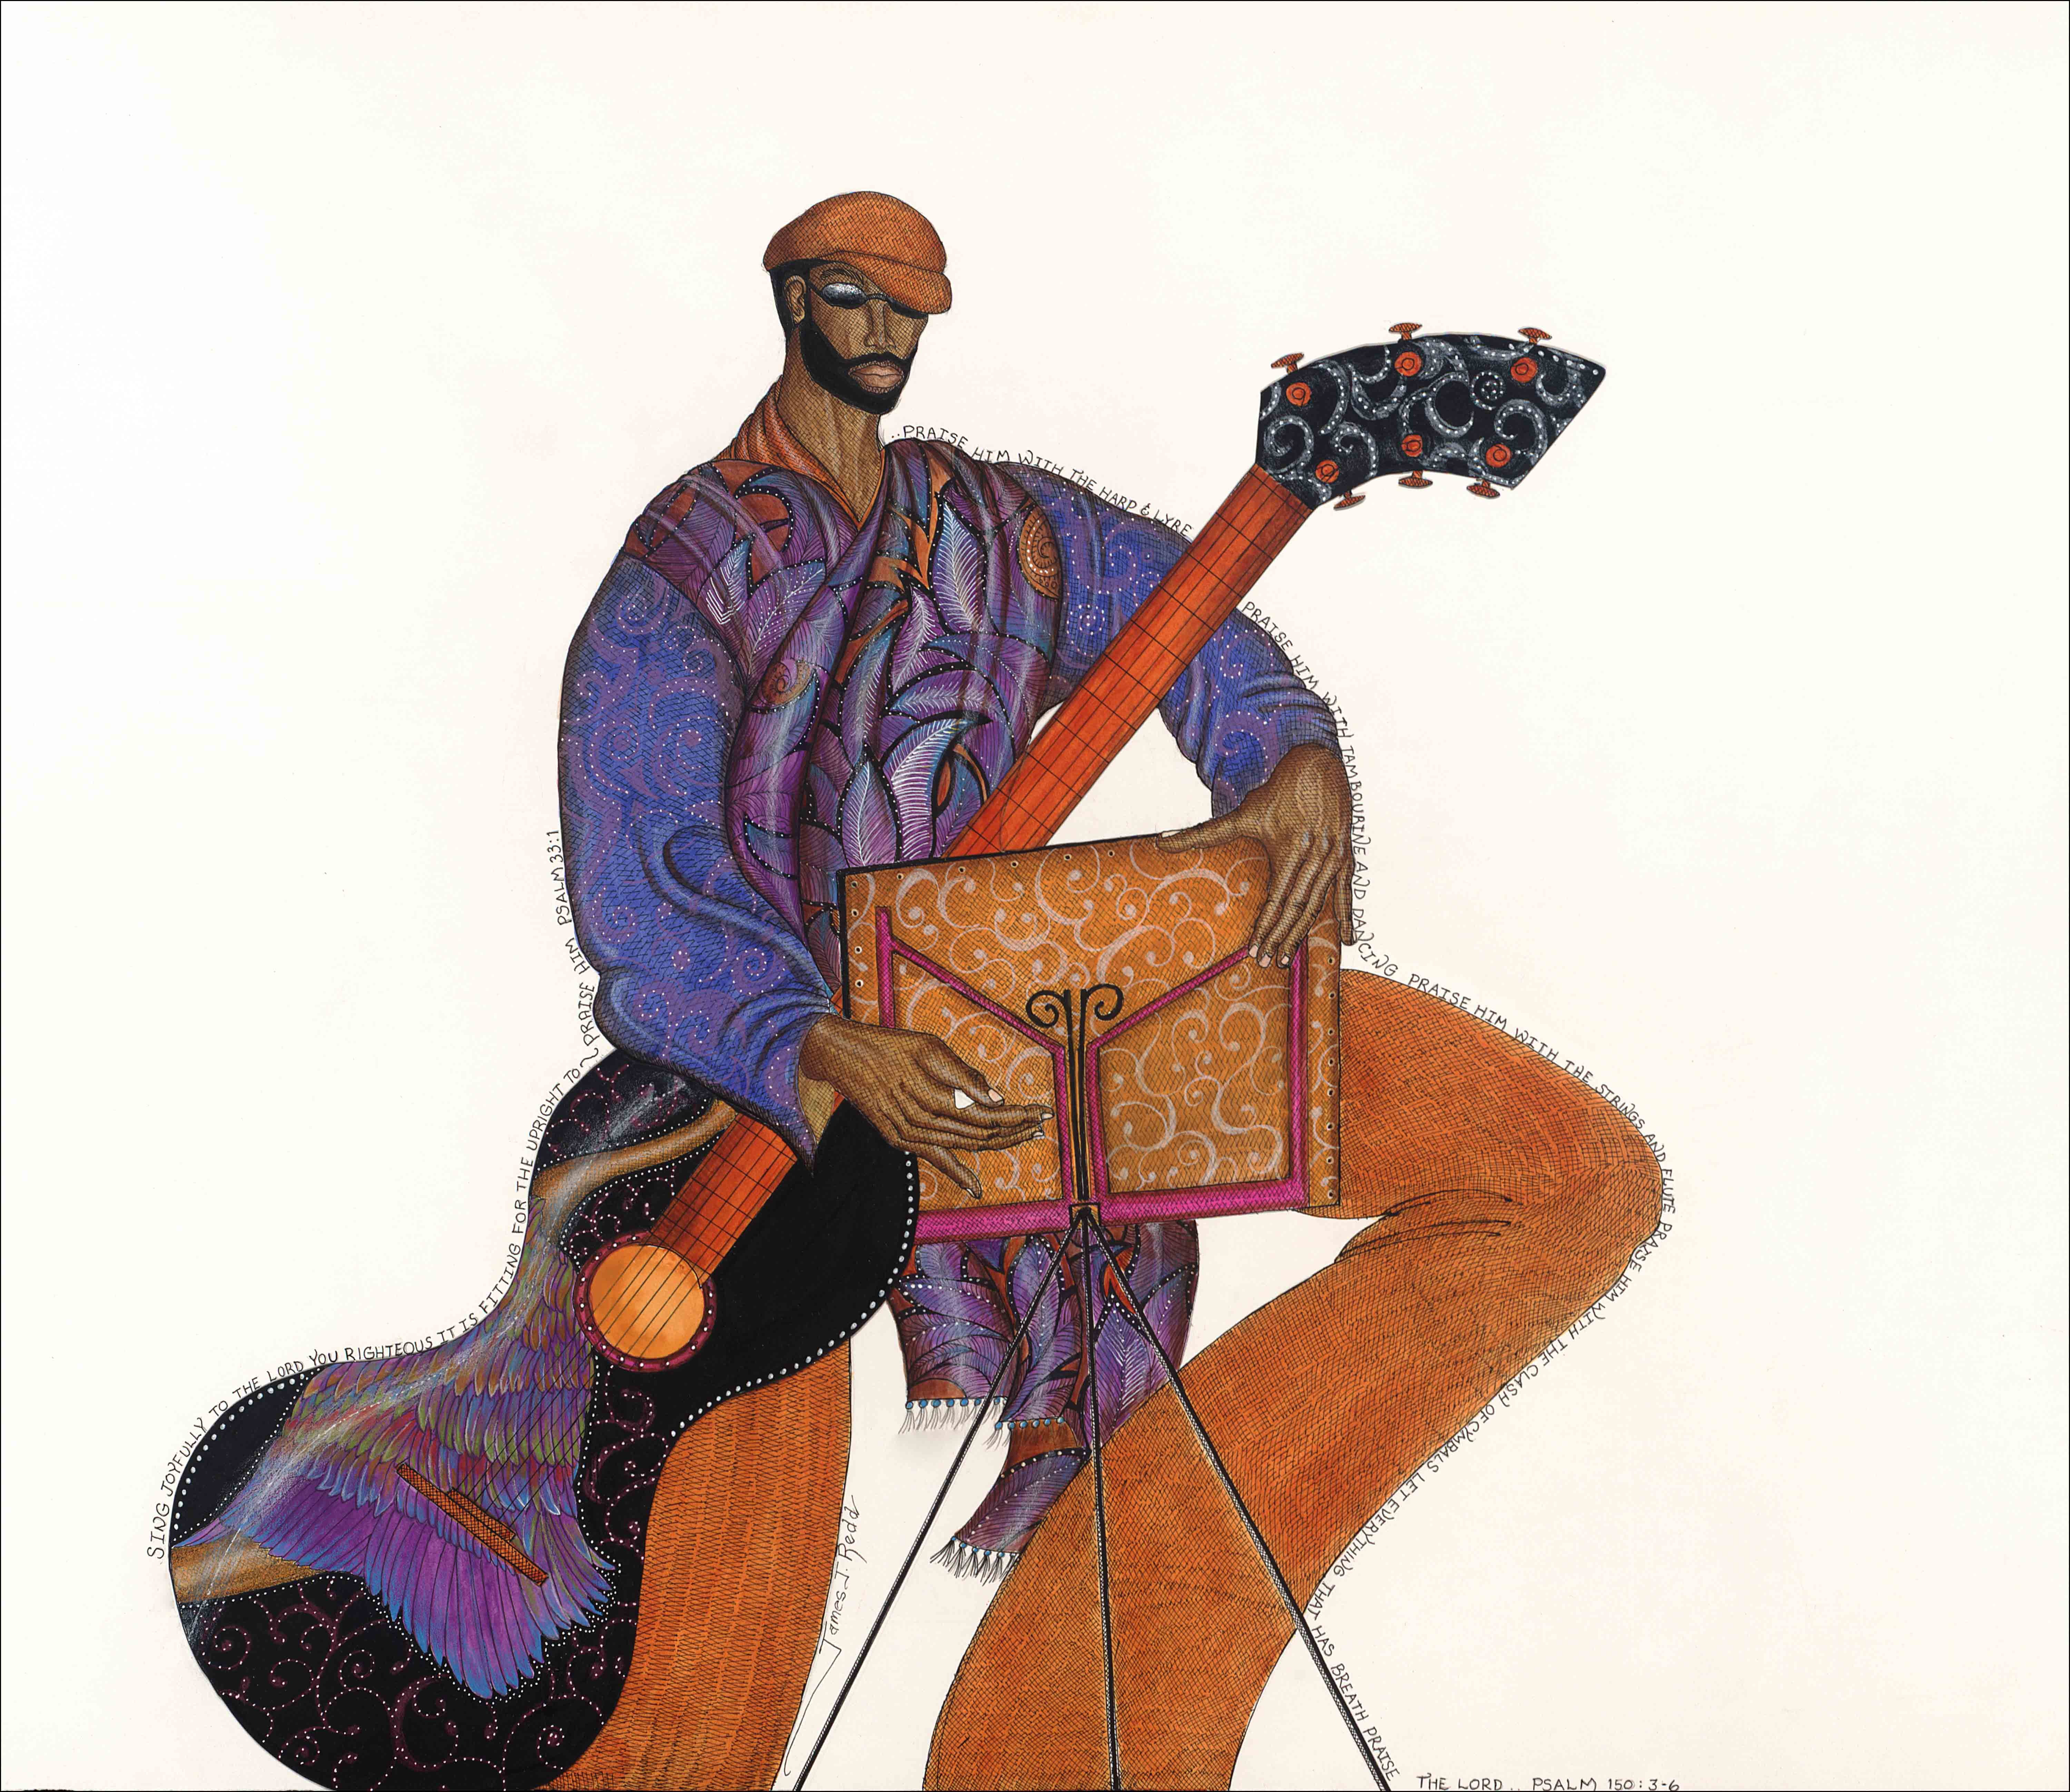 psalmist, man, jazz, musician, guitar, art, paisley